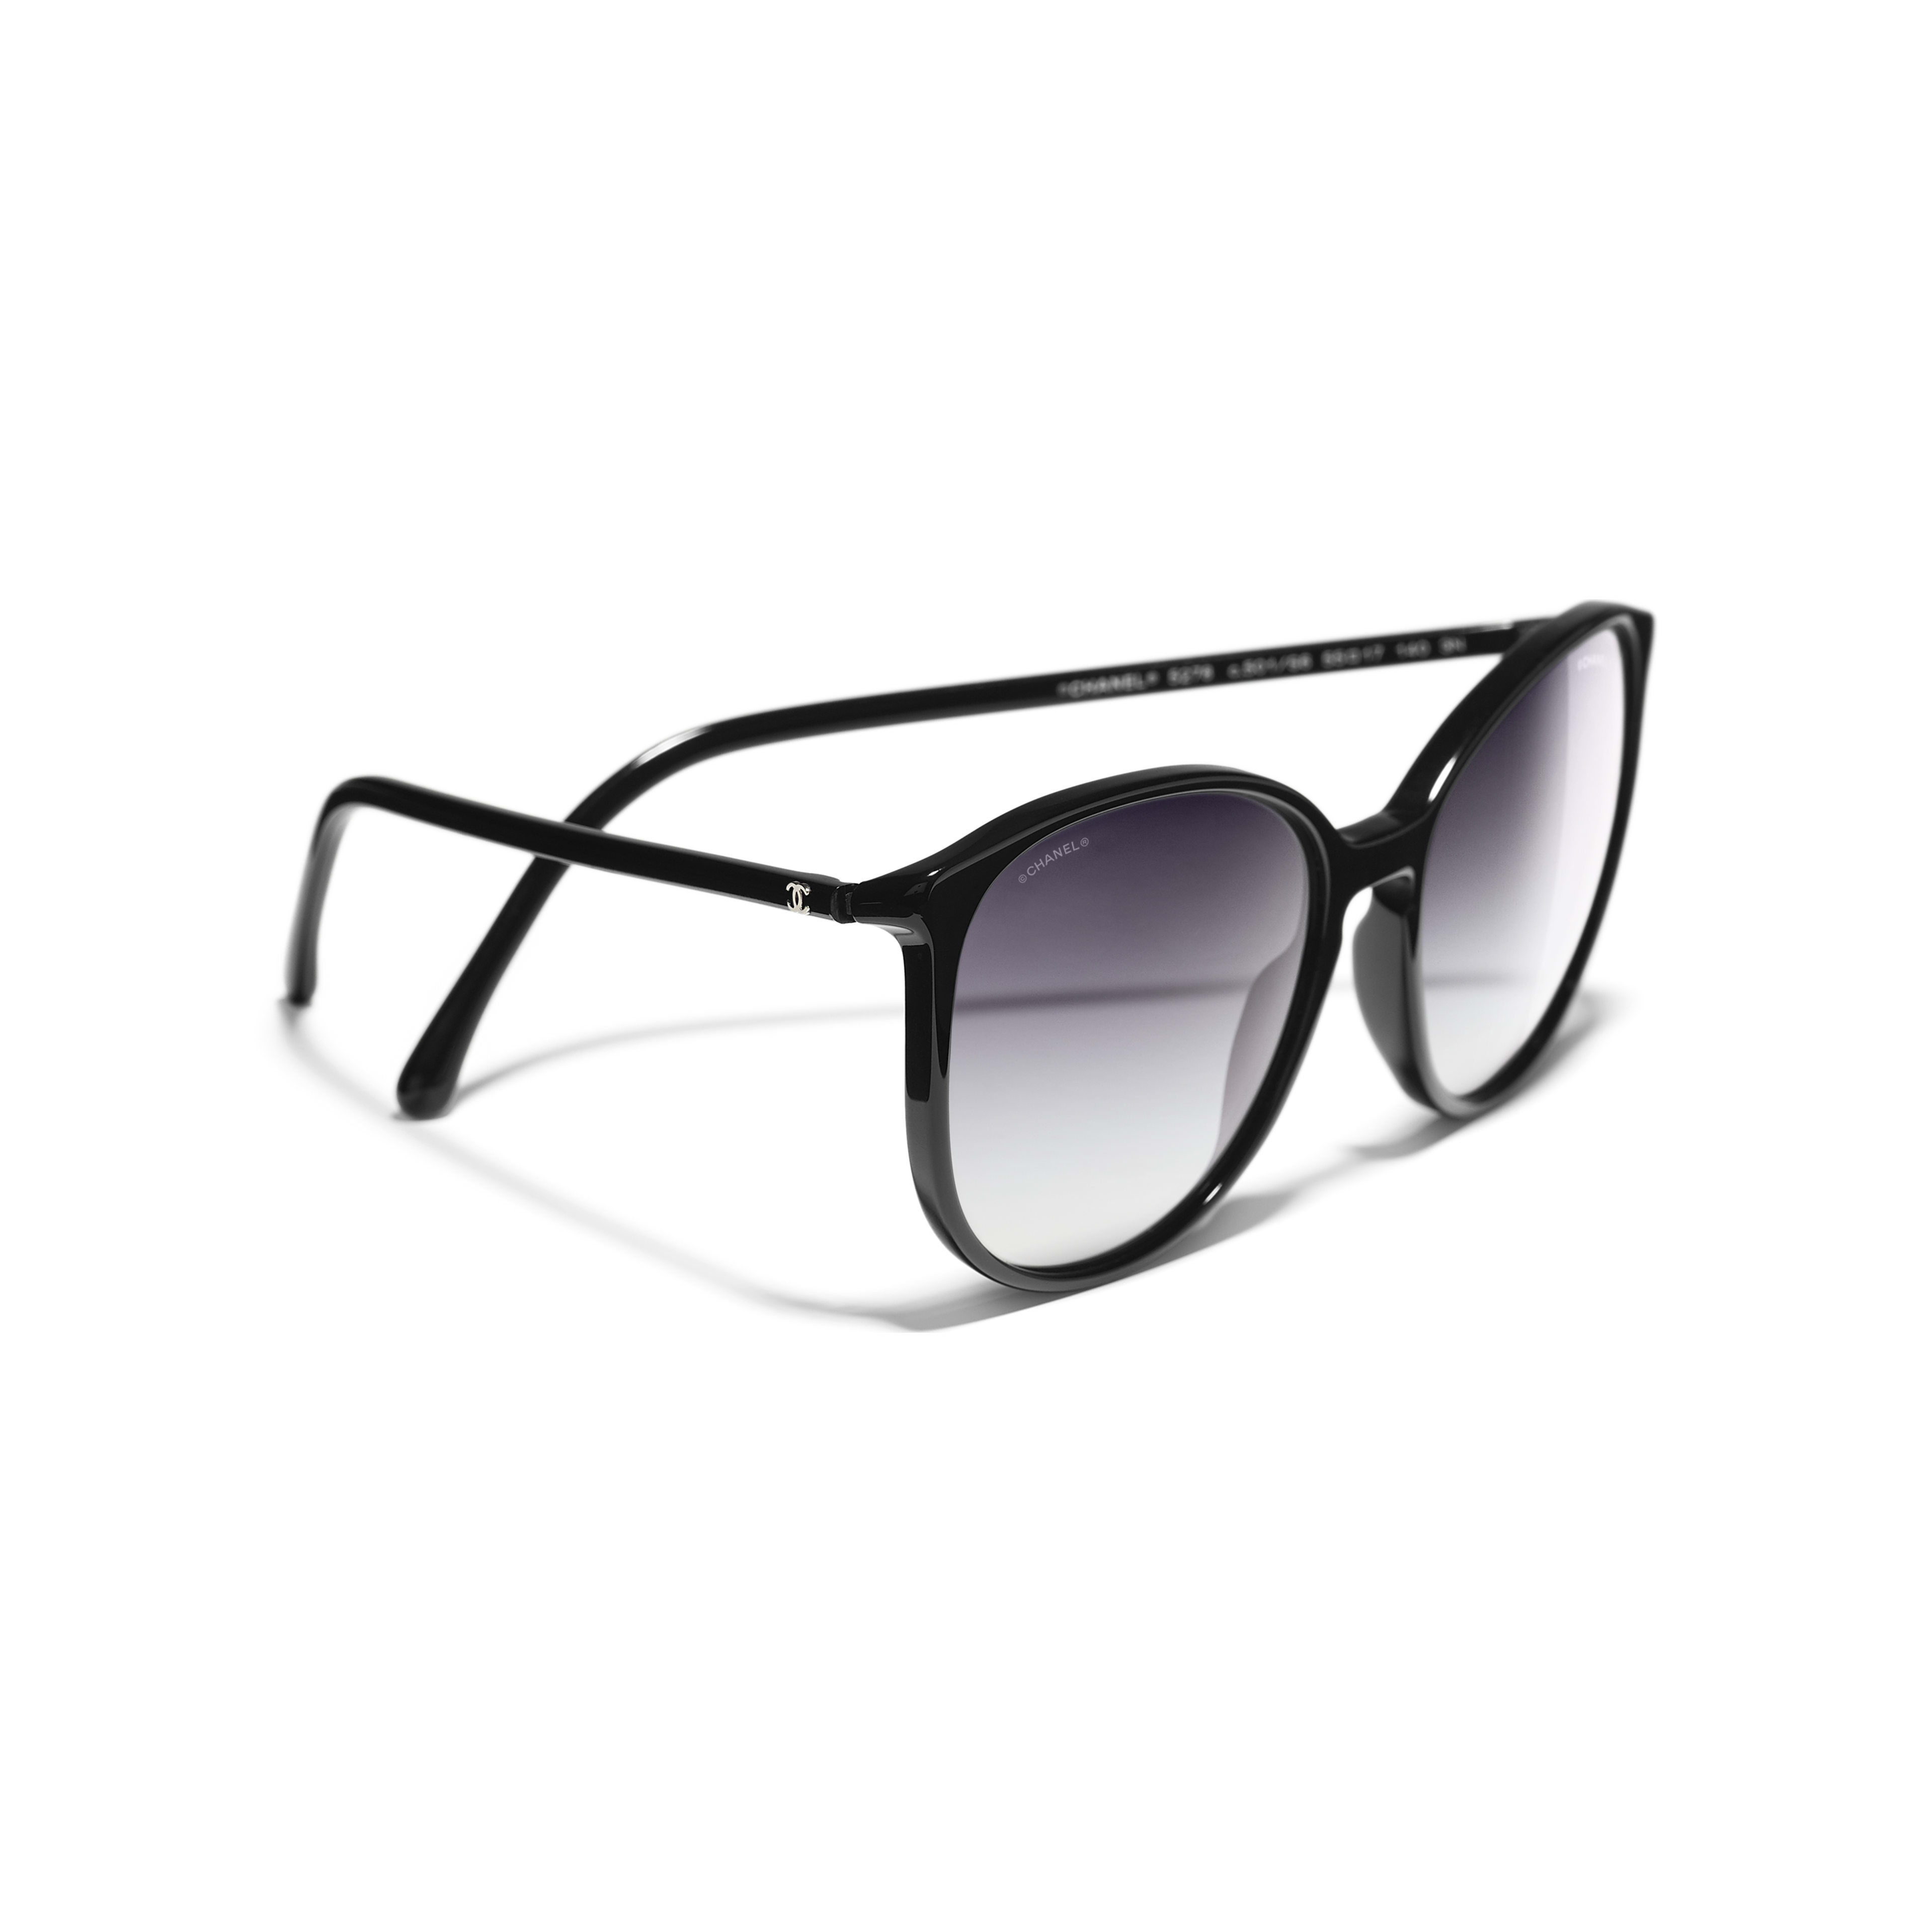 Butterfly Sunglasses Acetate Black -                                                               view 1 - see full sized version